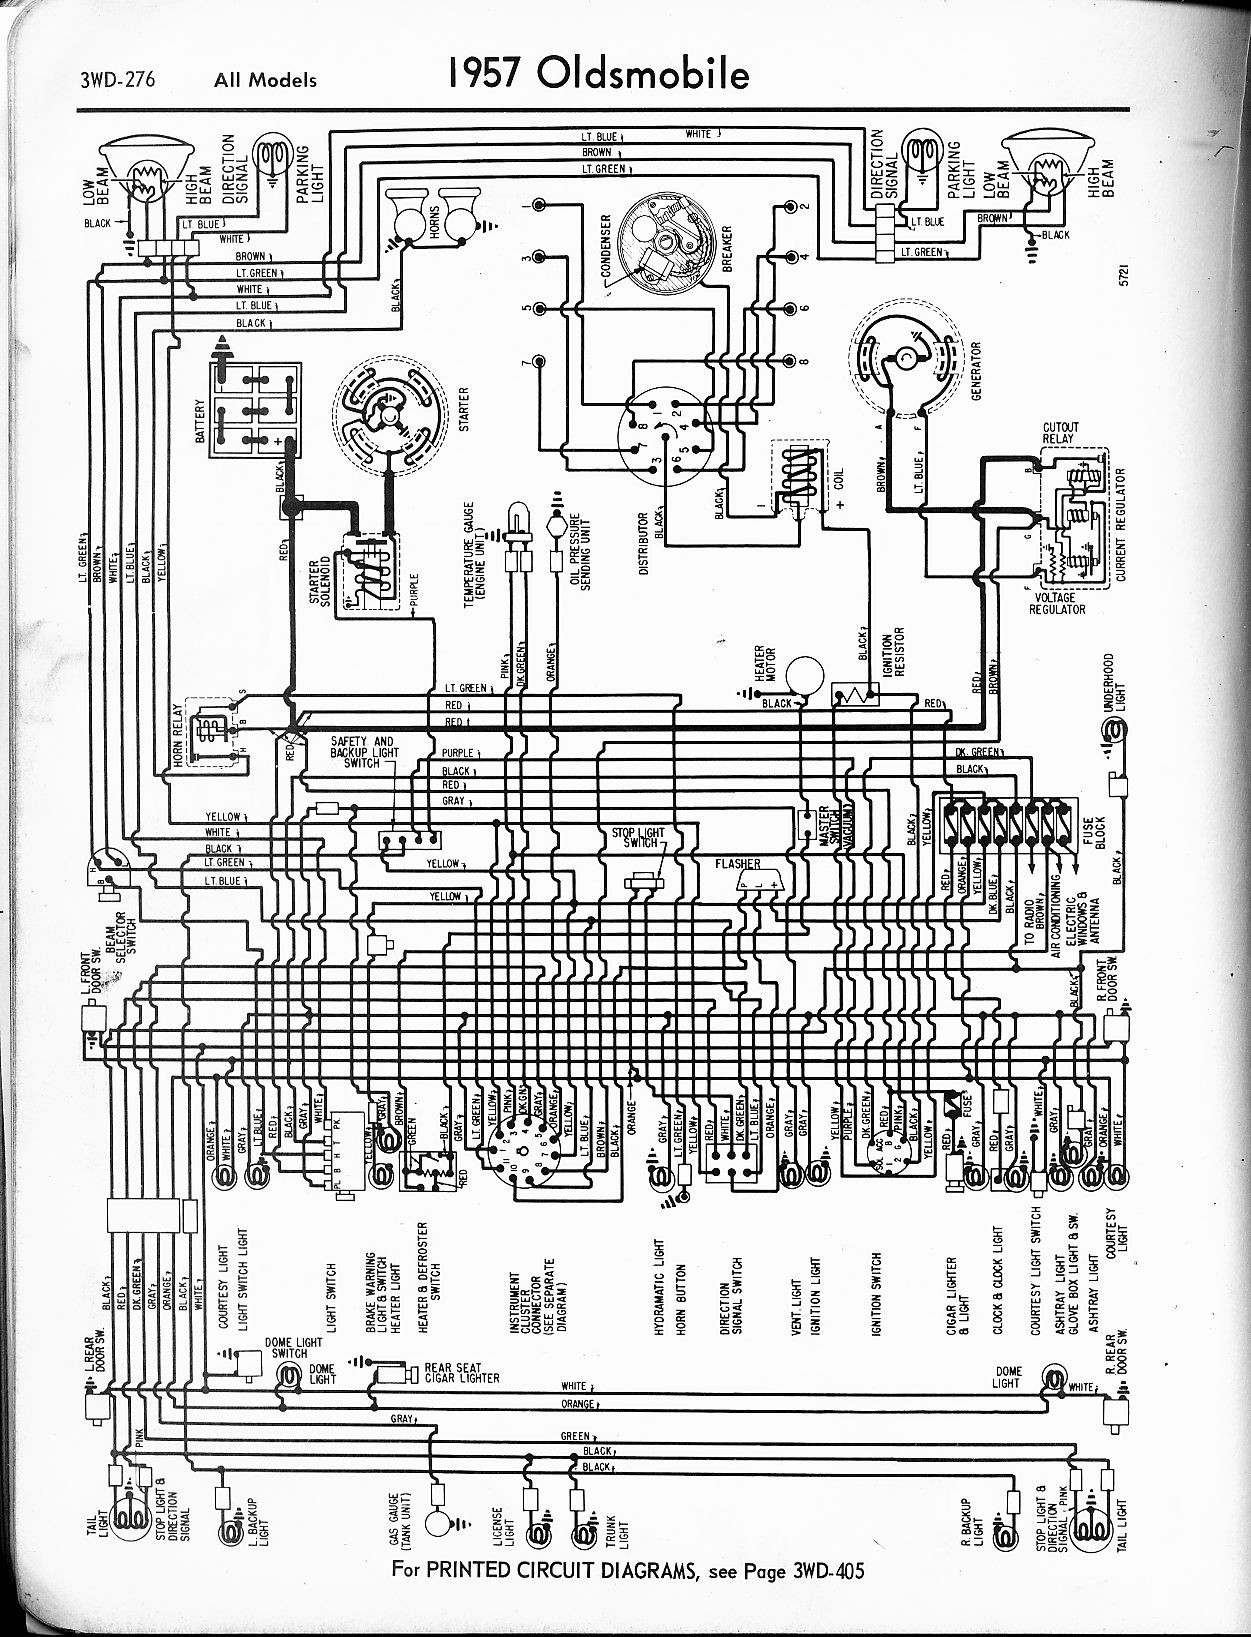 1997 Oldsmobile Silhouette Wiring Diagram Good Guide Of 2001 Chevy Lumina 1999 Engine Schematic Rh 18 Meleebakeryisland De Diagrams